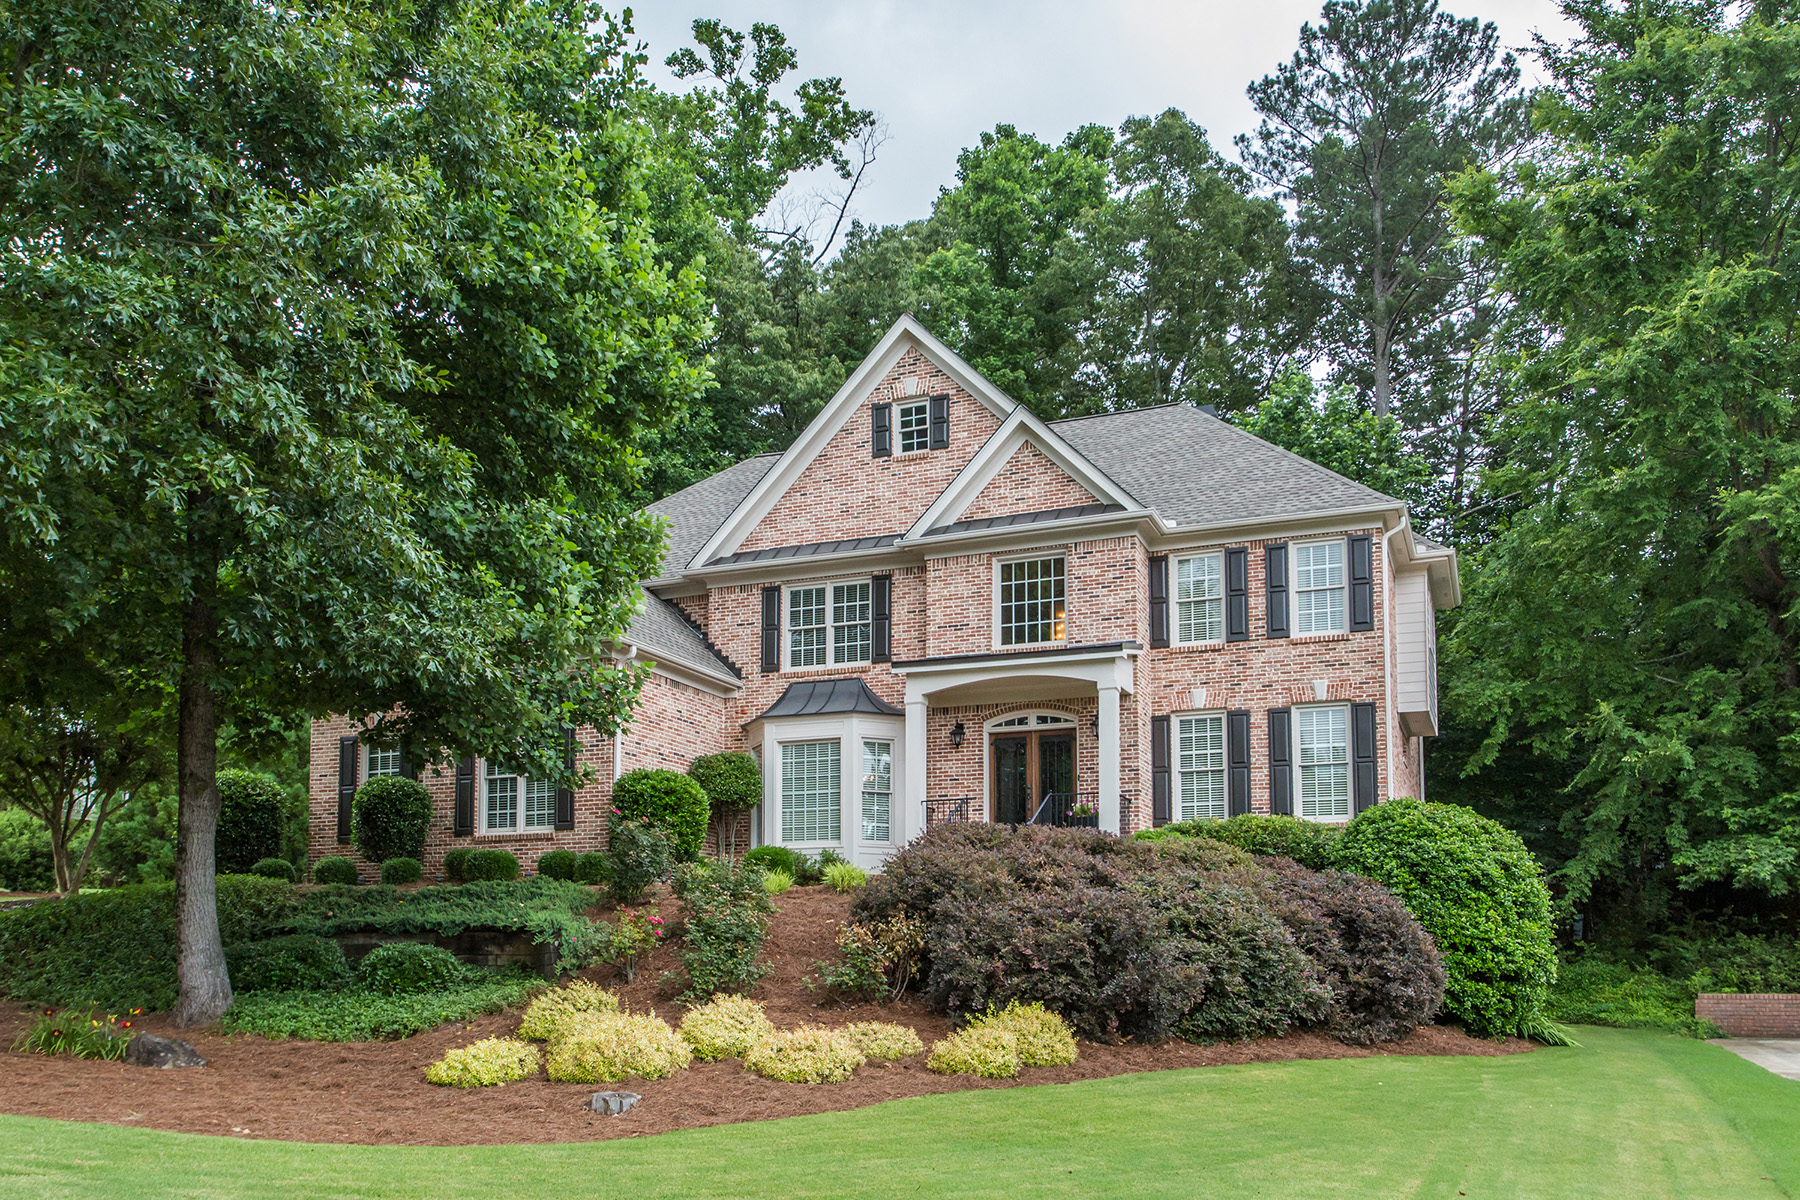 Single Family Home for Sale at Practically Perfect In Every Way 7260 Scotshire Way Cumming, Georgia 30040 United States